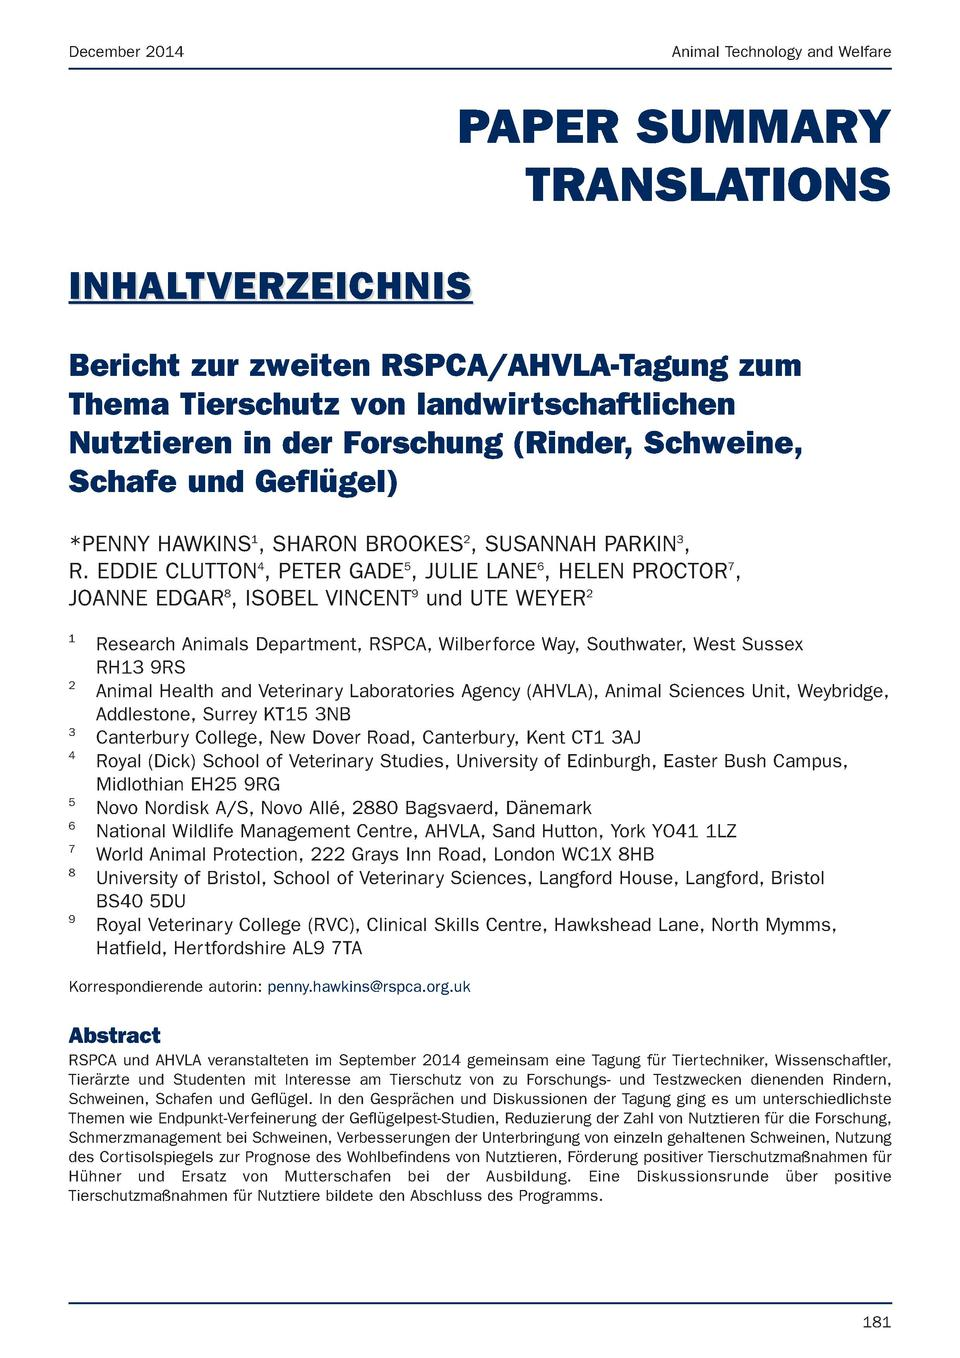 December 2014  Animal Technology and Welfare  PAPER SUMMARY TRANSLATIONS INHALTVERZEICHNIS Bericht zur zweiten RSPCA AHVLA...